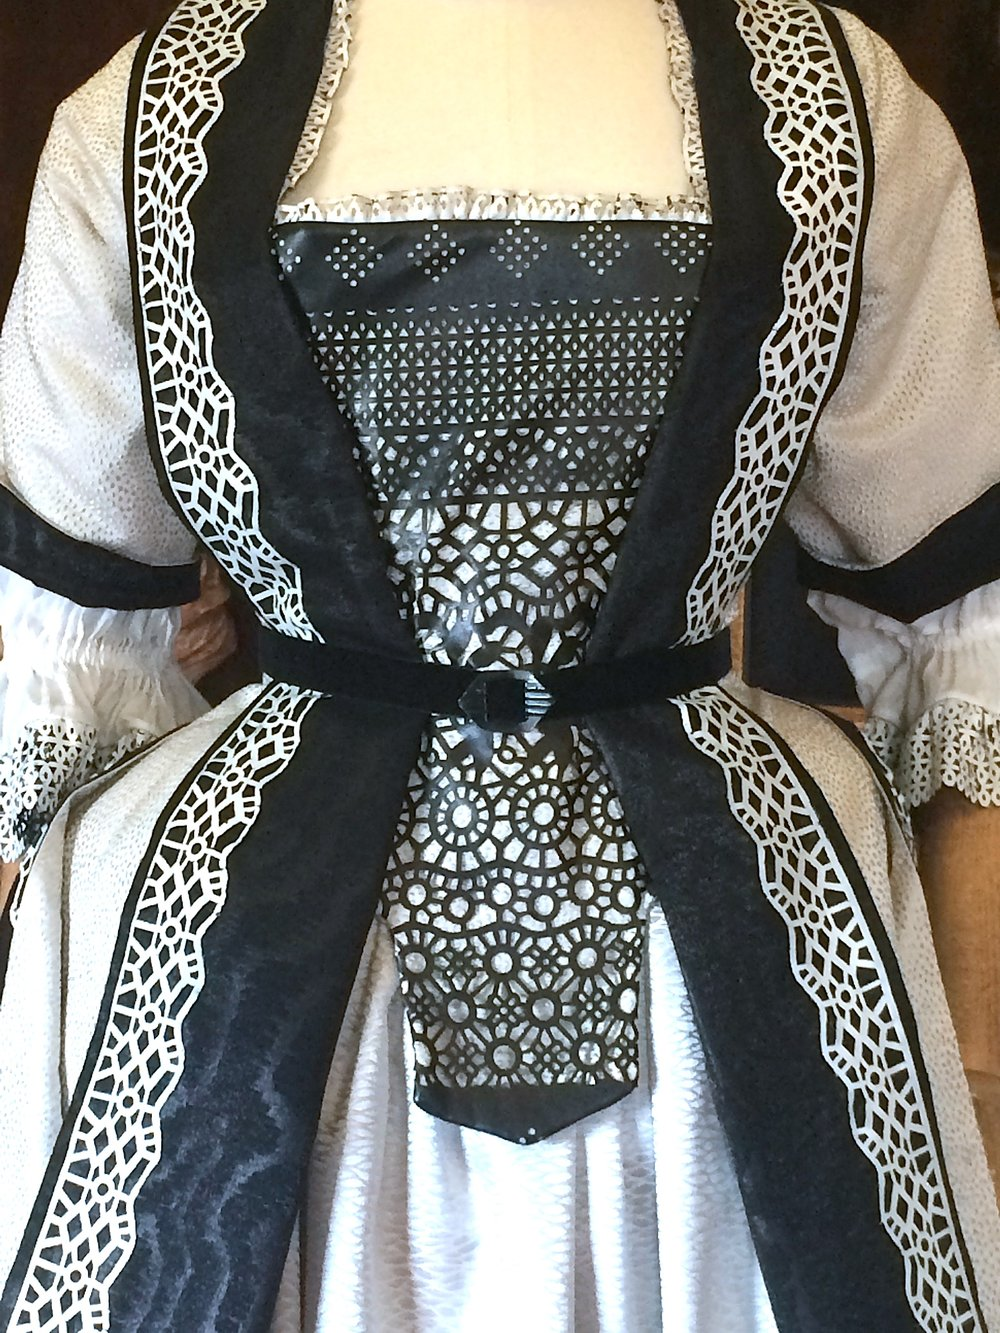 The favourite costumes 2.jpg